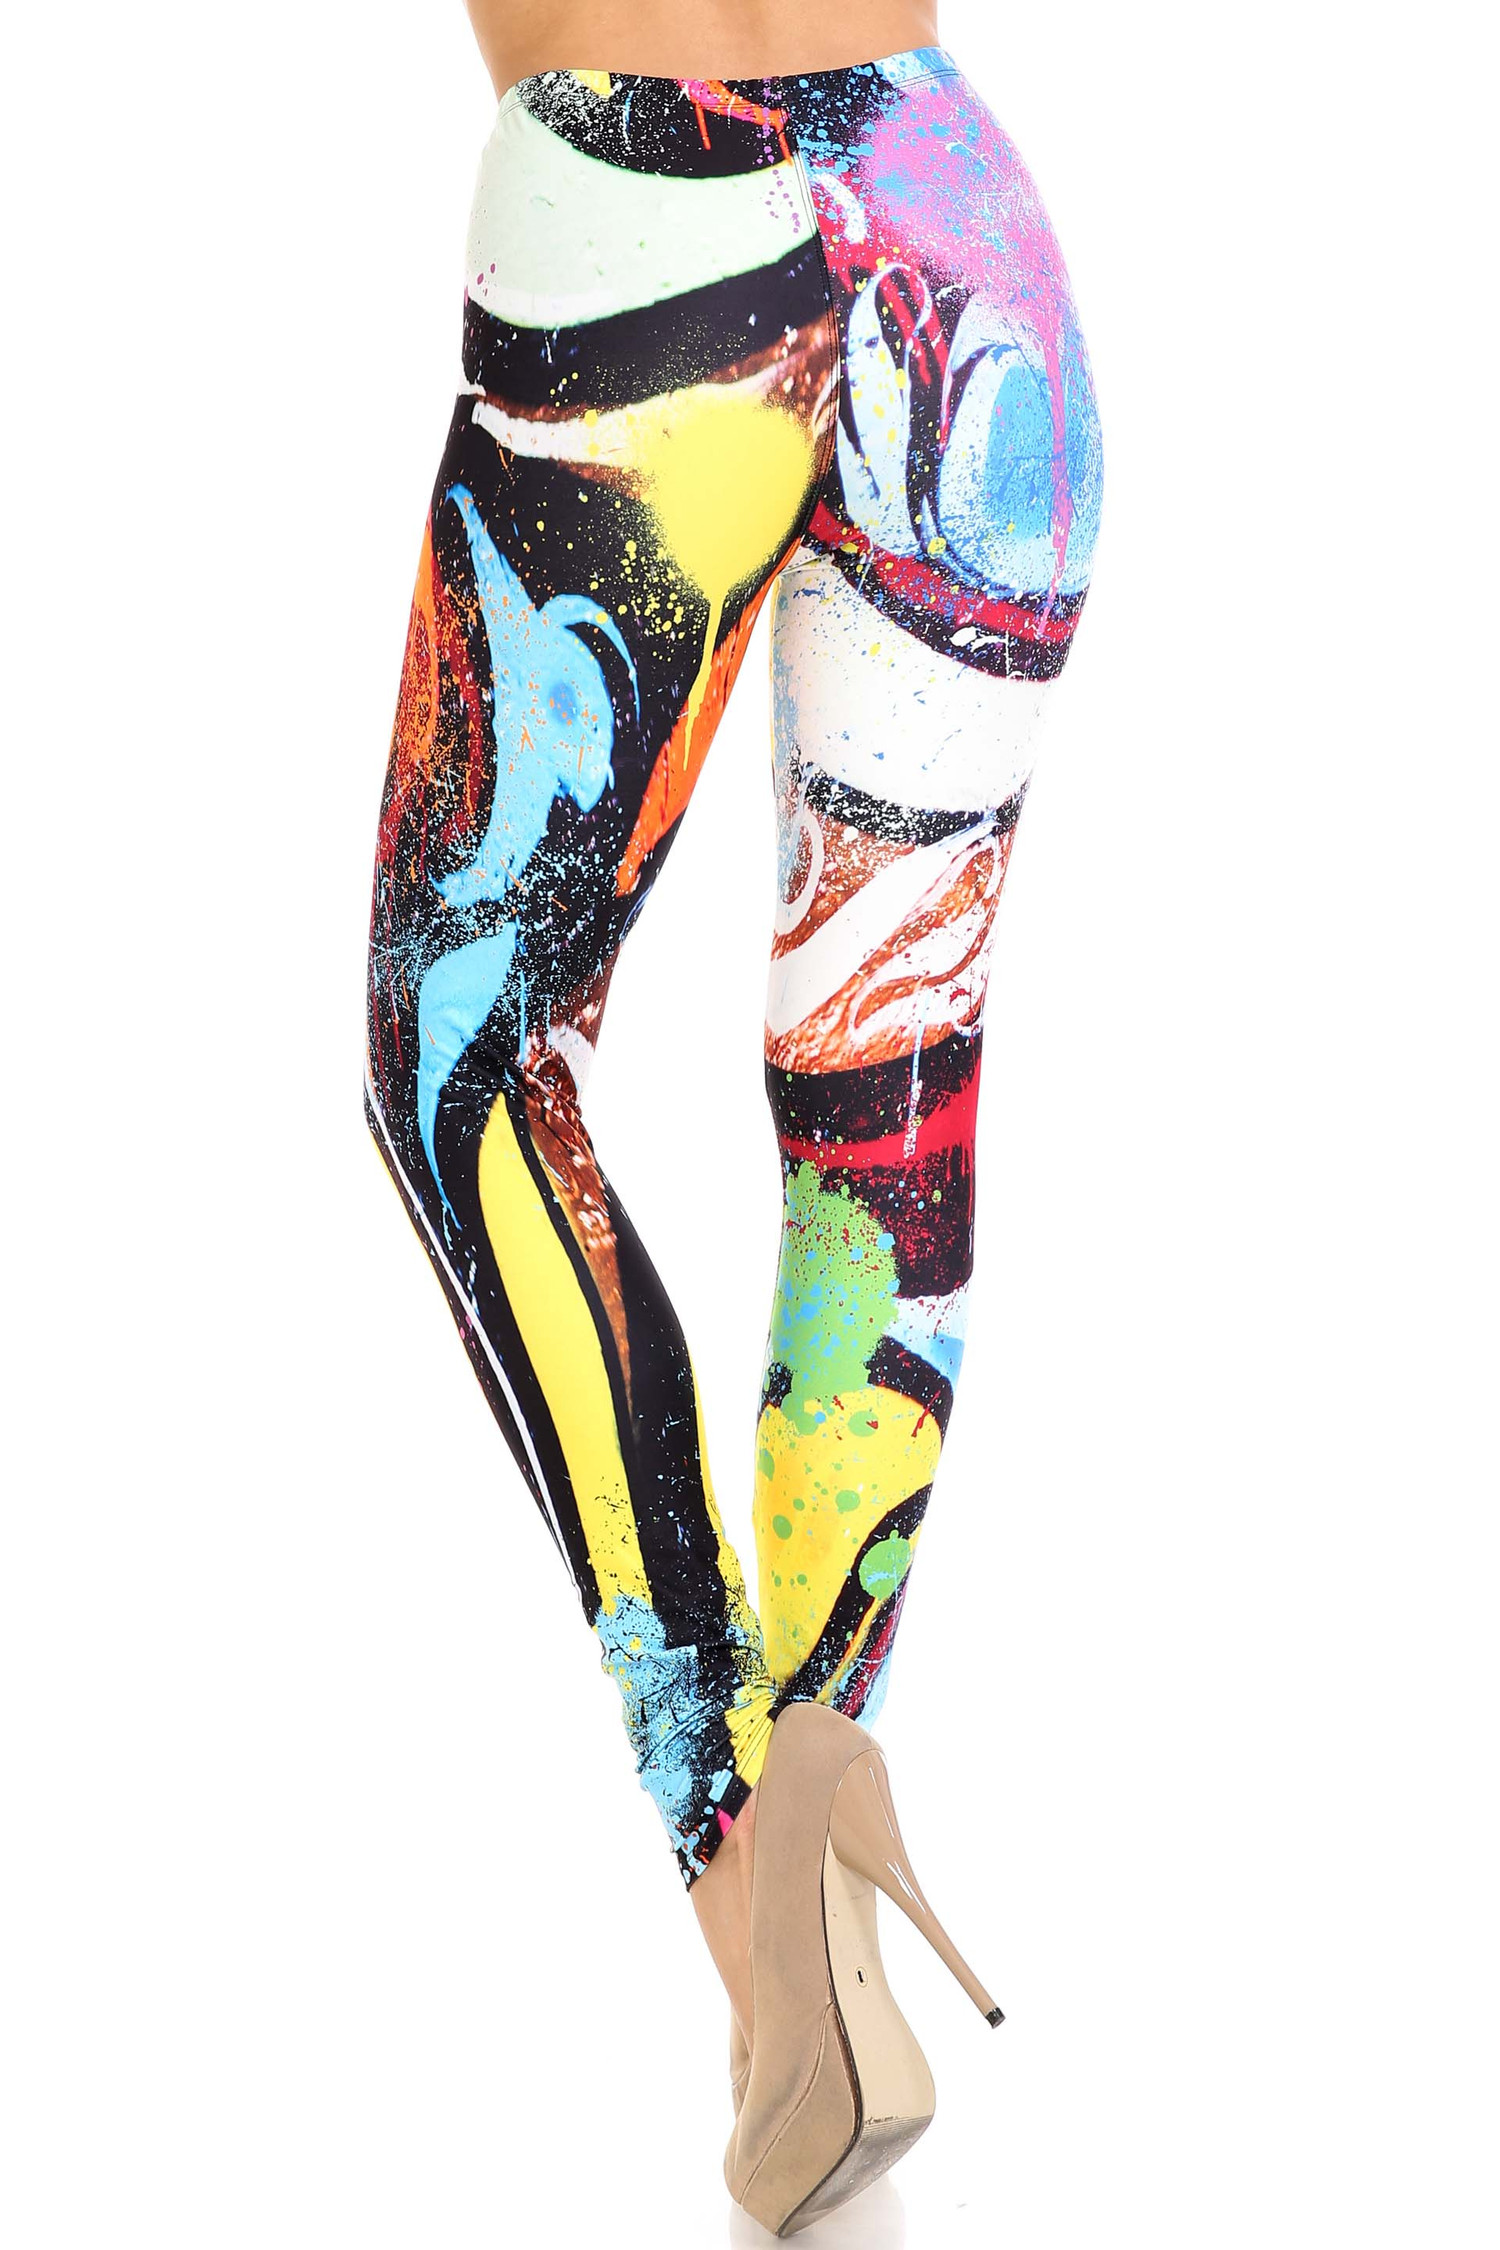 Creamy Soft Colorful Paint Strokes Plus Size Leggings - USA Fashion™